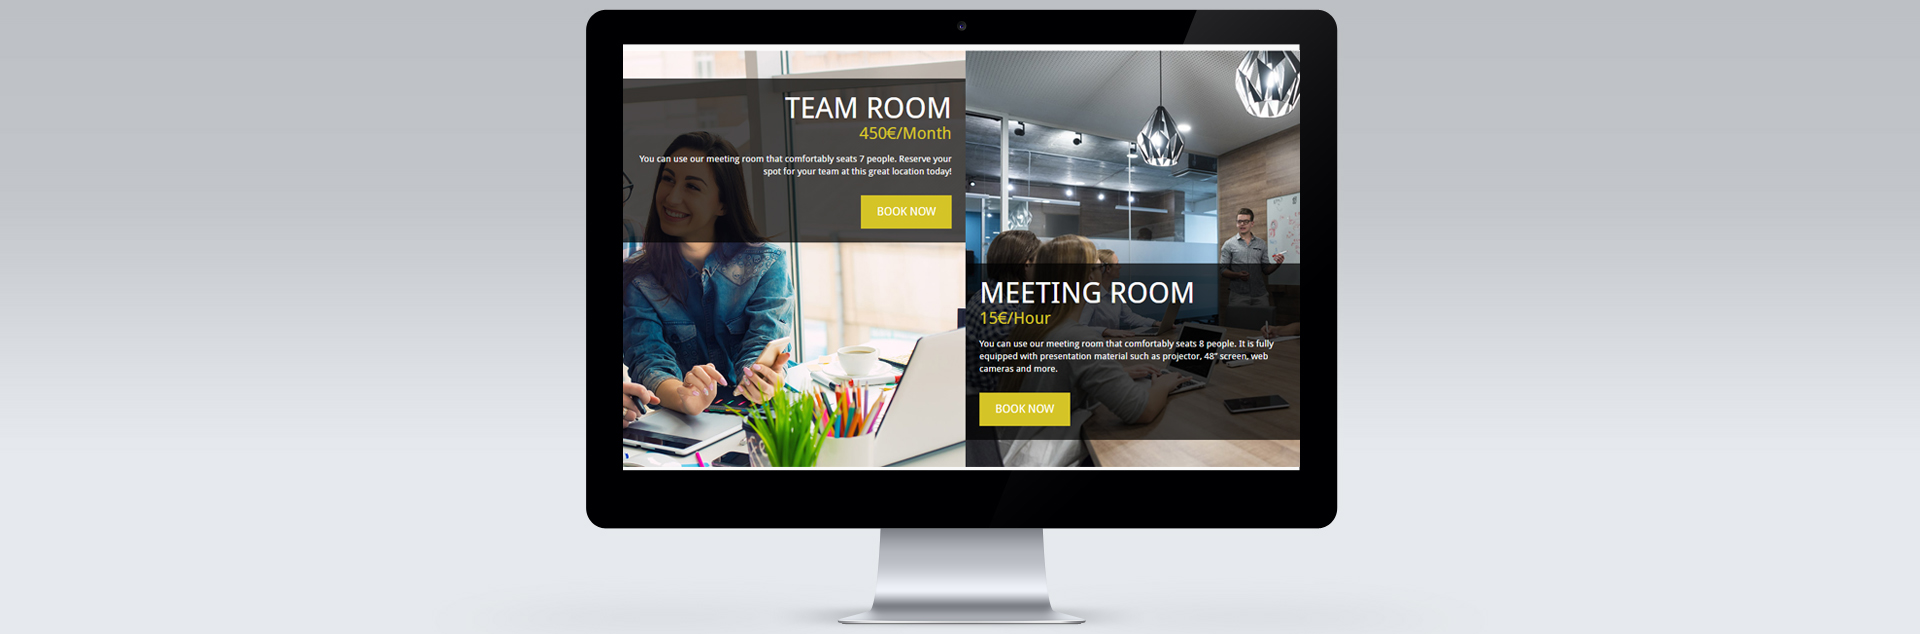 office2 rooms page